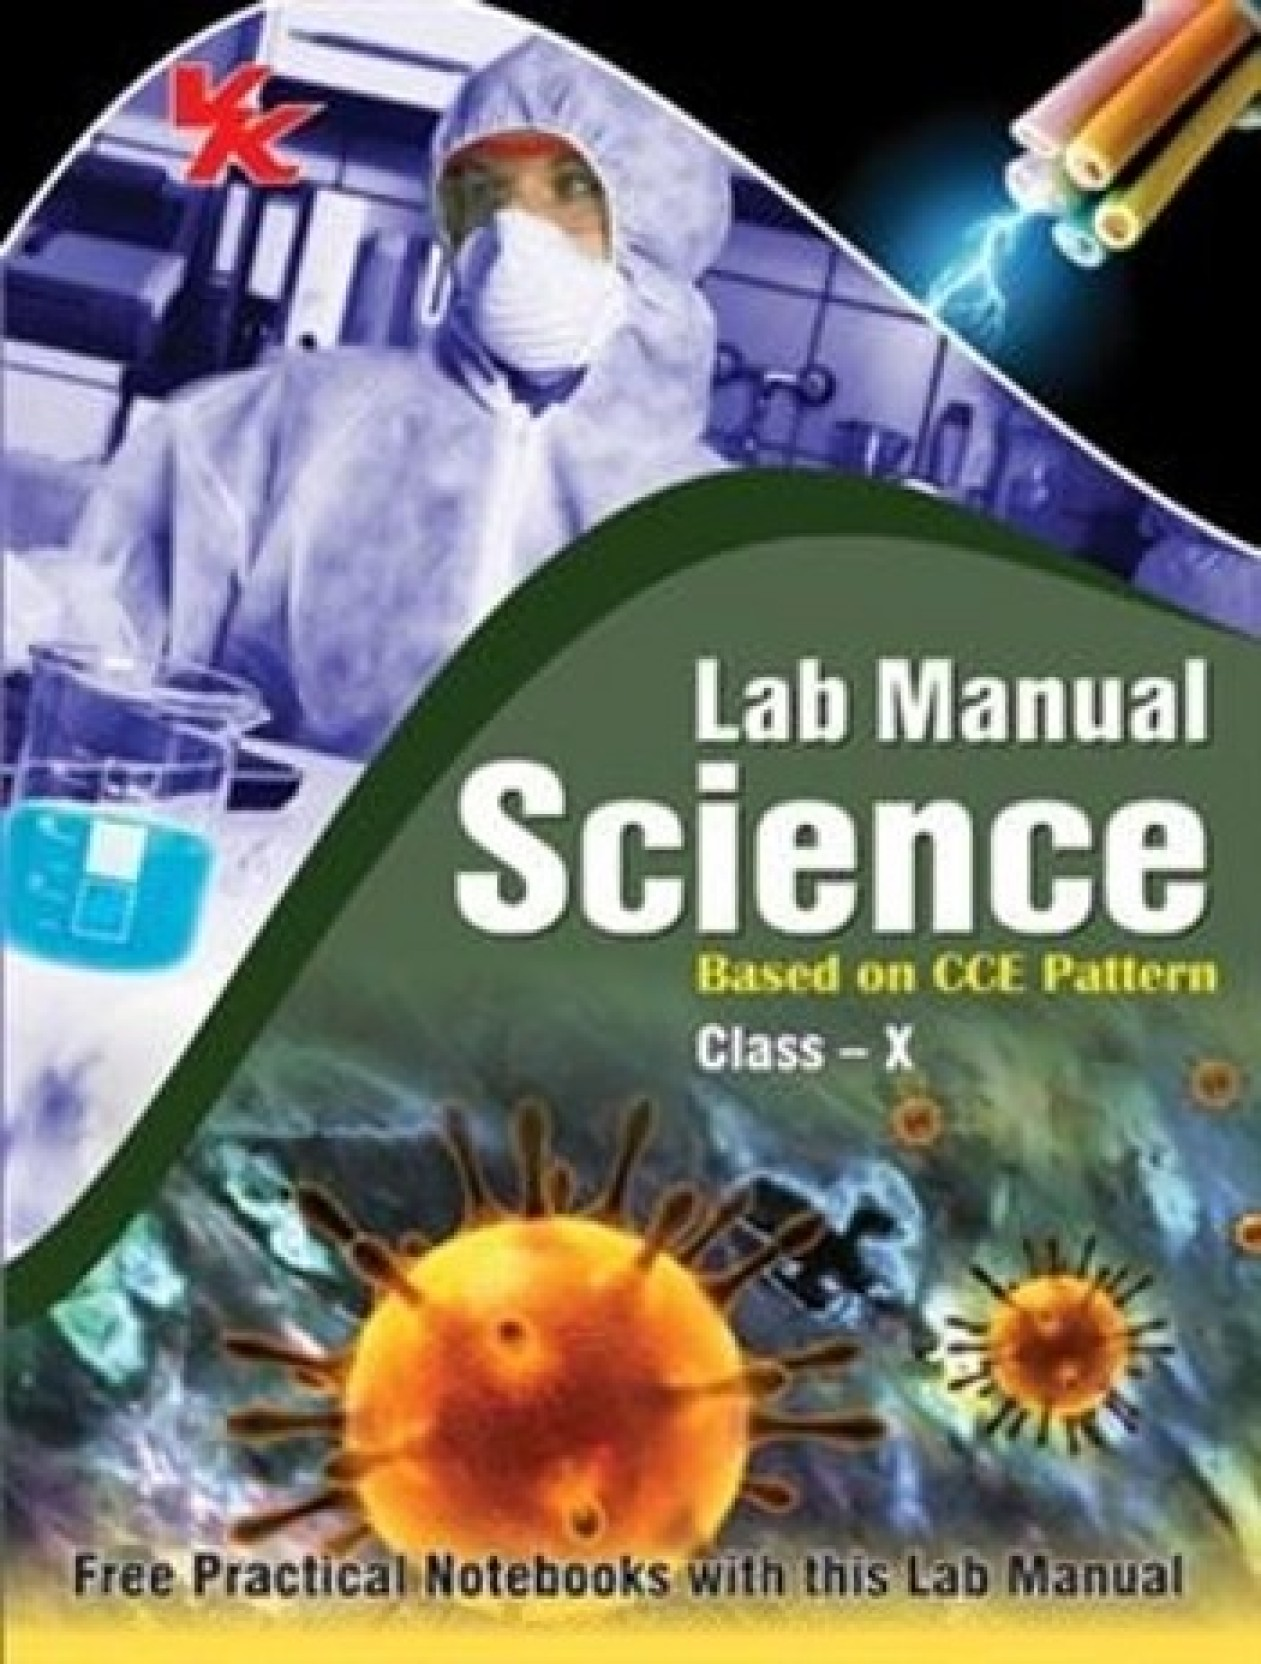 Lab Manual Science (Class 10) 1st Edition. Share